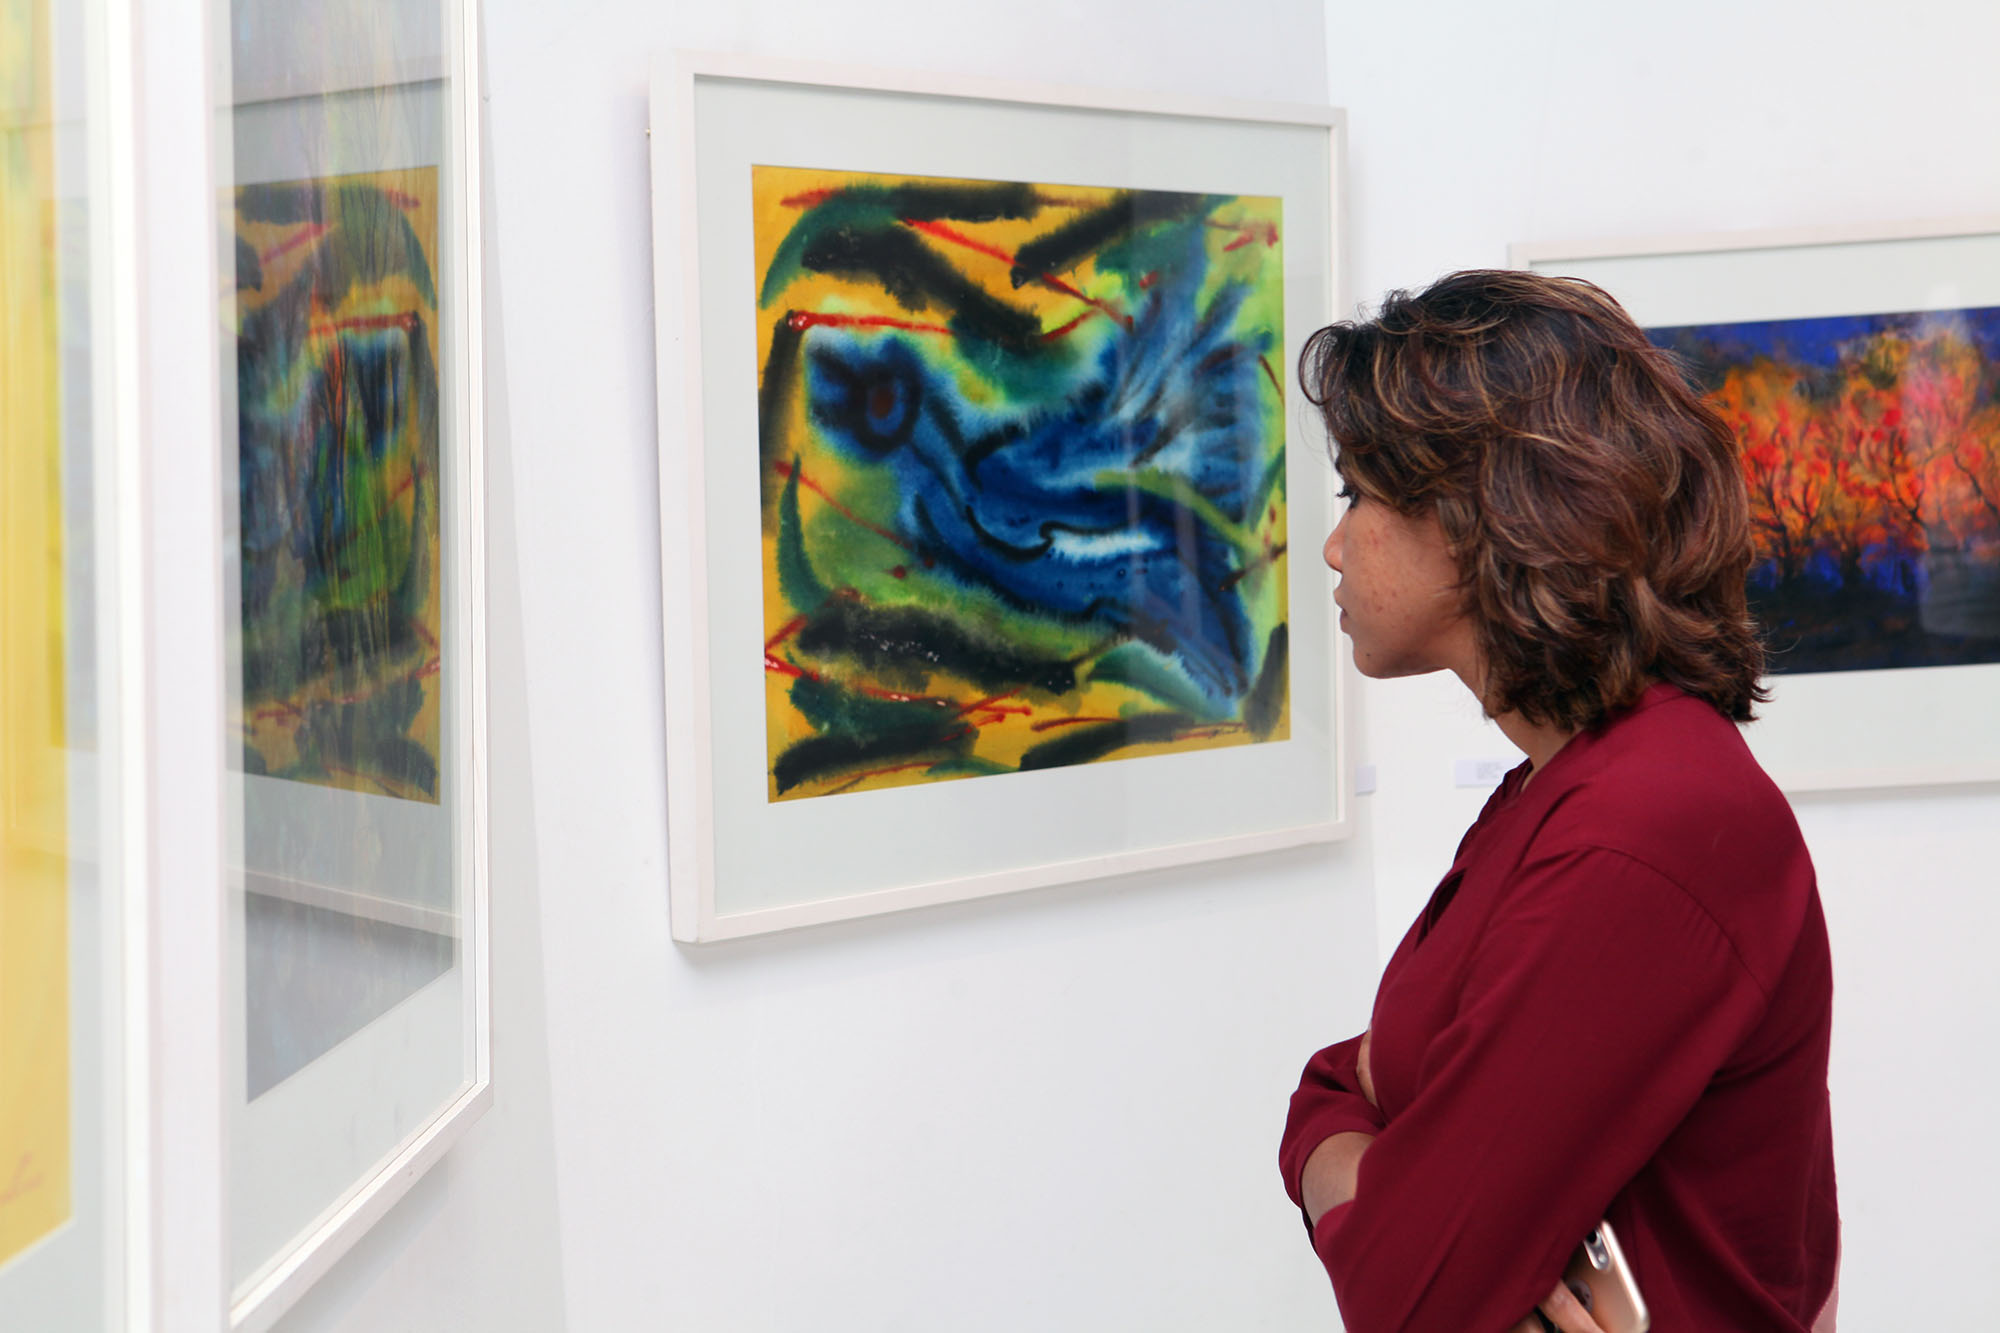 The group painting exhibition at La Galerie